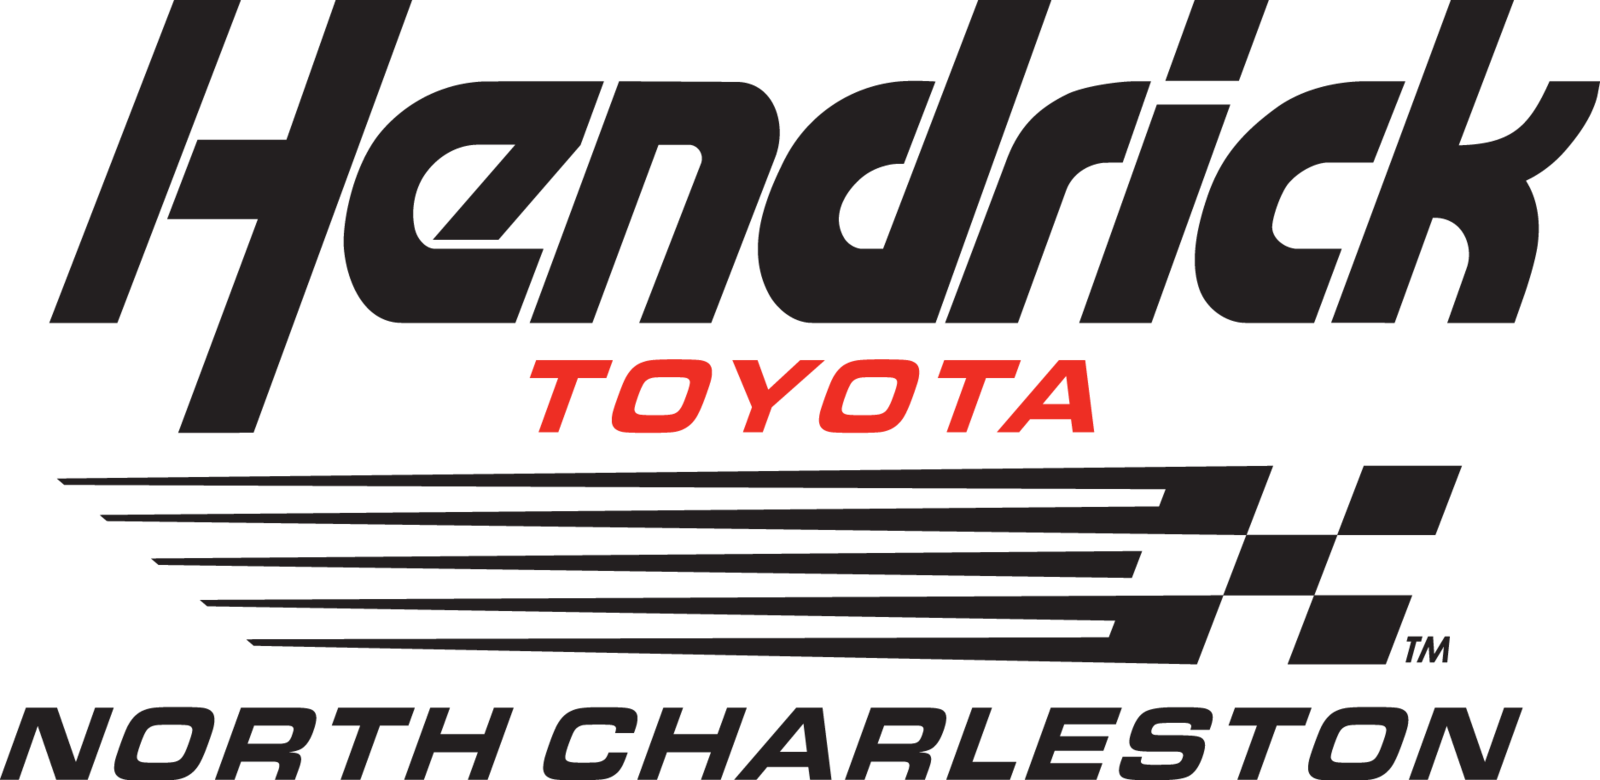 Superb Hendrick Toyota North Charleston   North Charleston, SC: Read Consumer  Reviews, Browse Used And New Cars For Sale